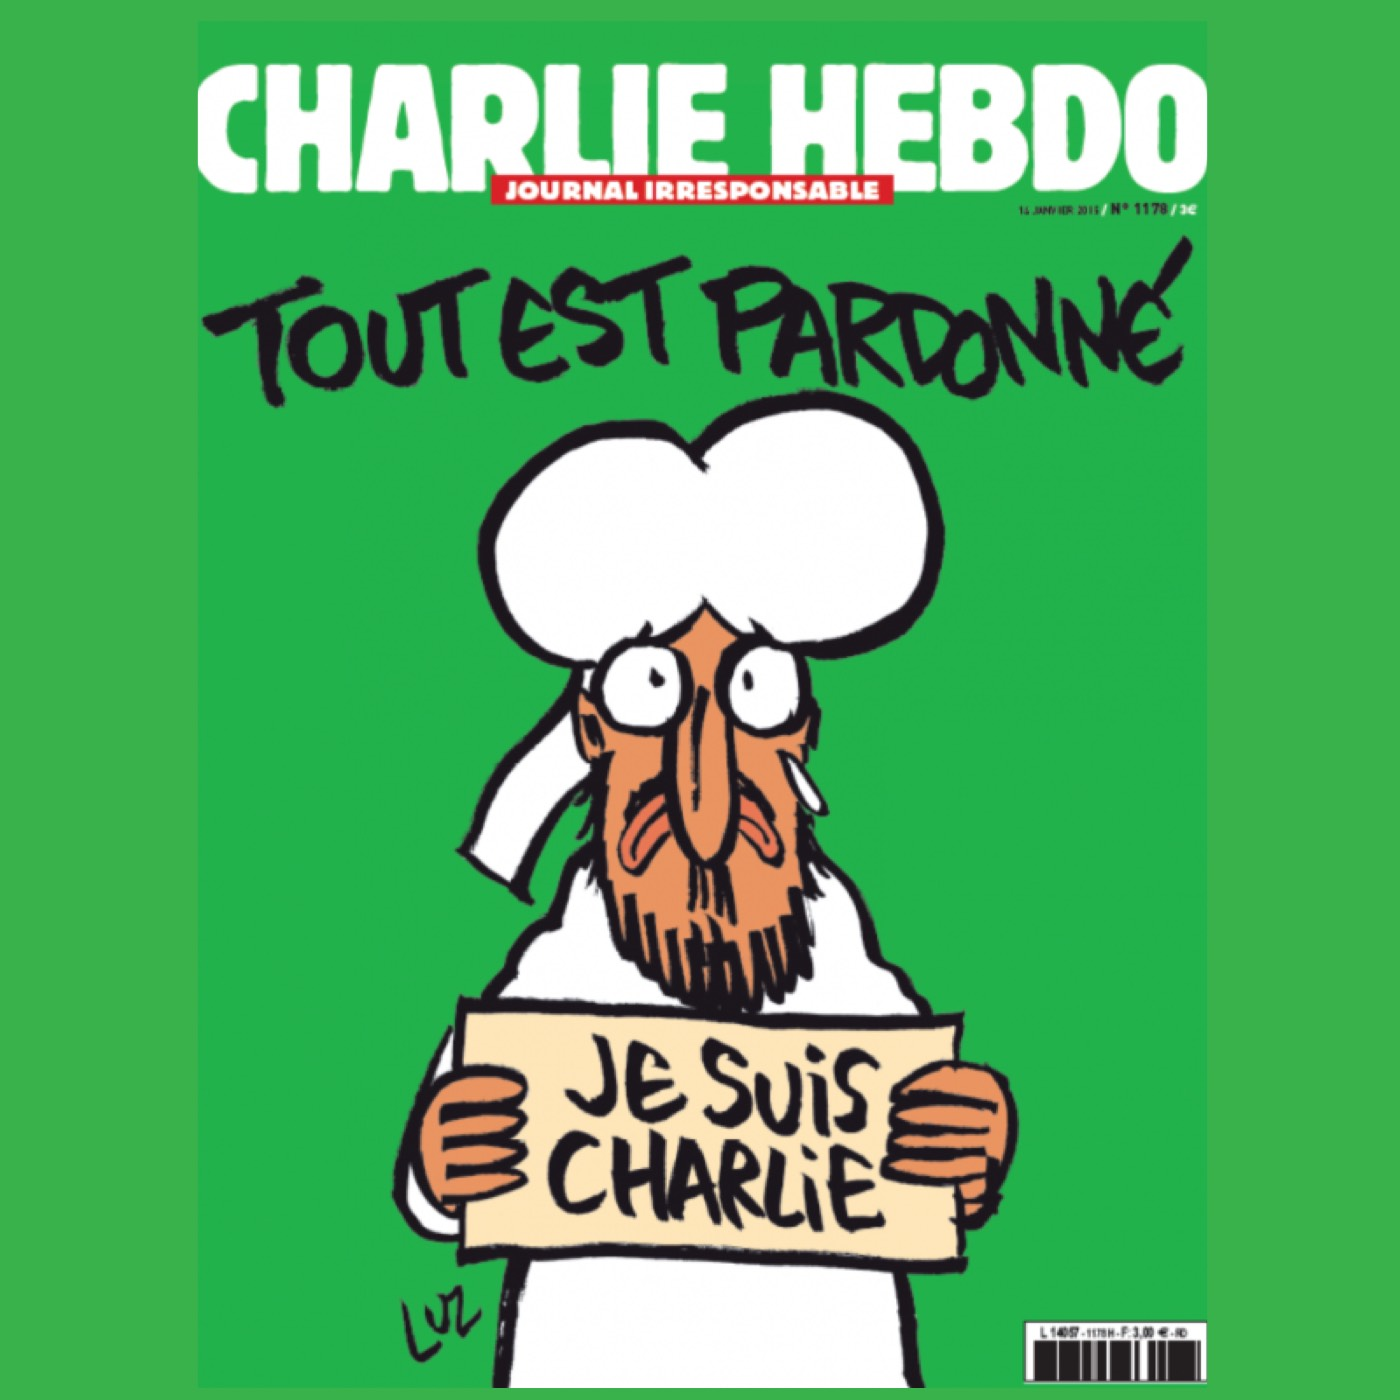 (2015/01/20) Freedom, terrorism and where we stand (Charlie Hebdo)